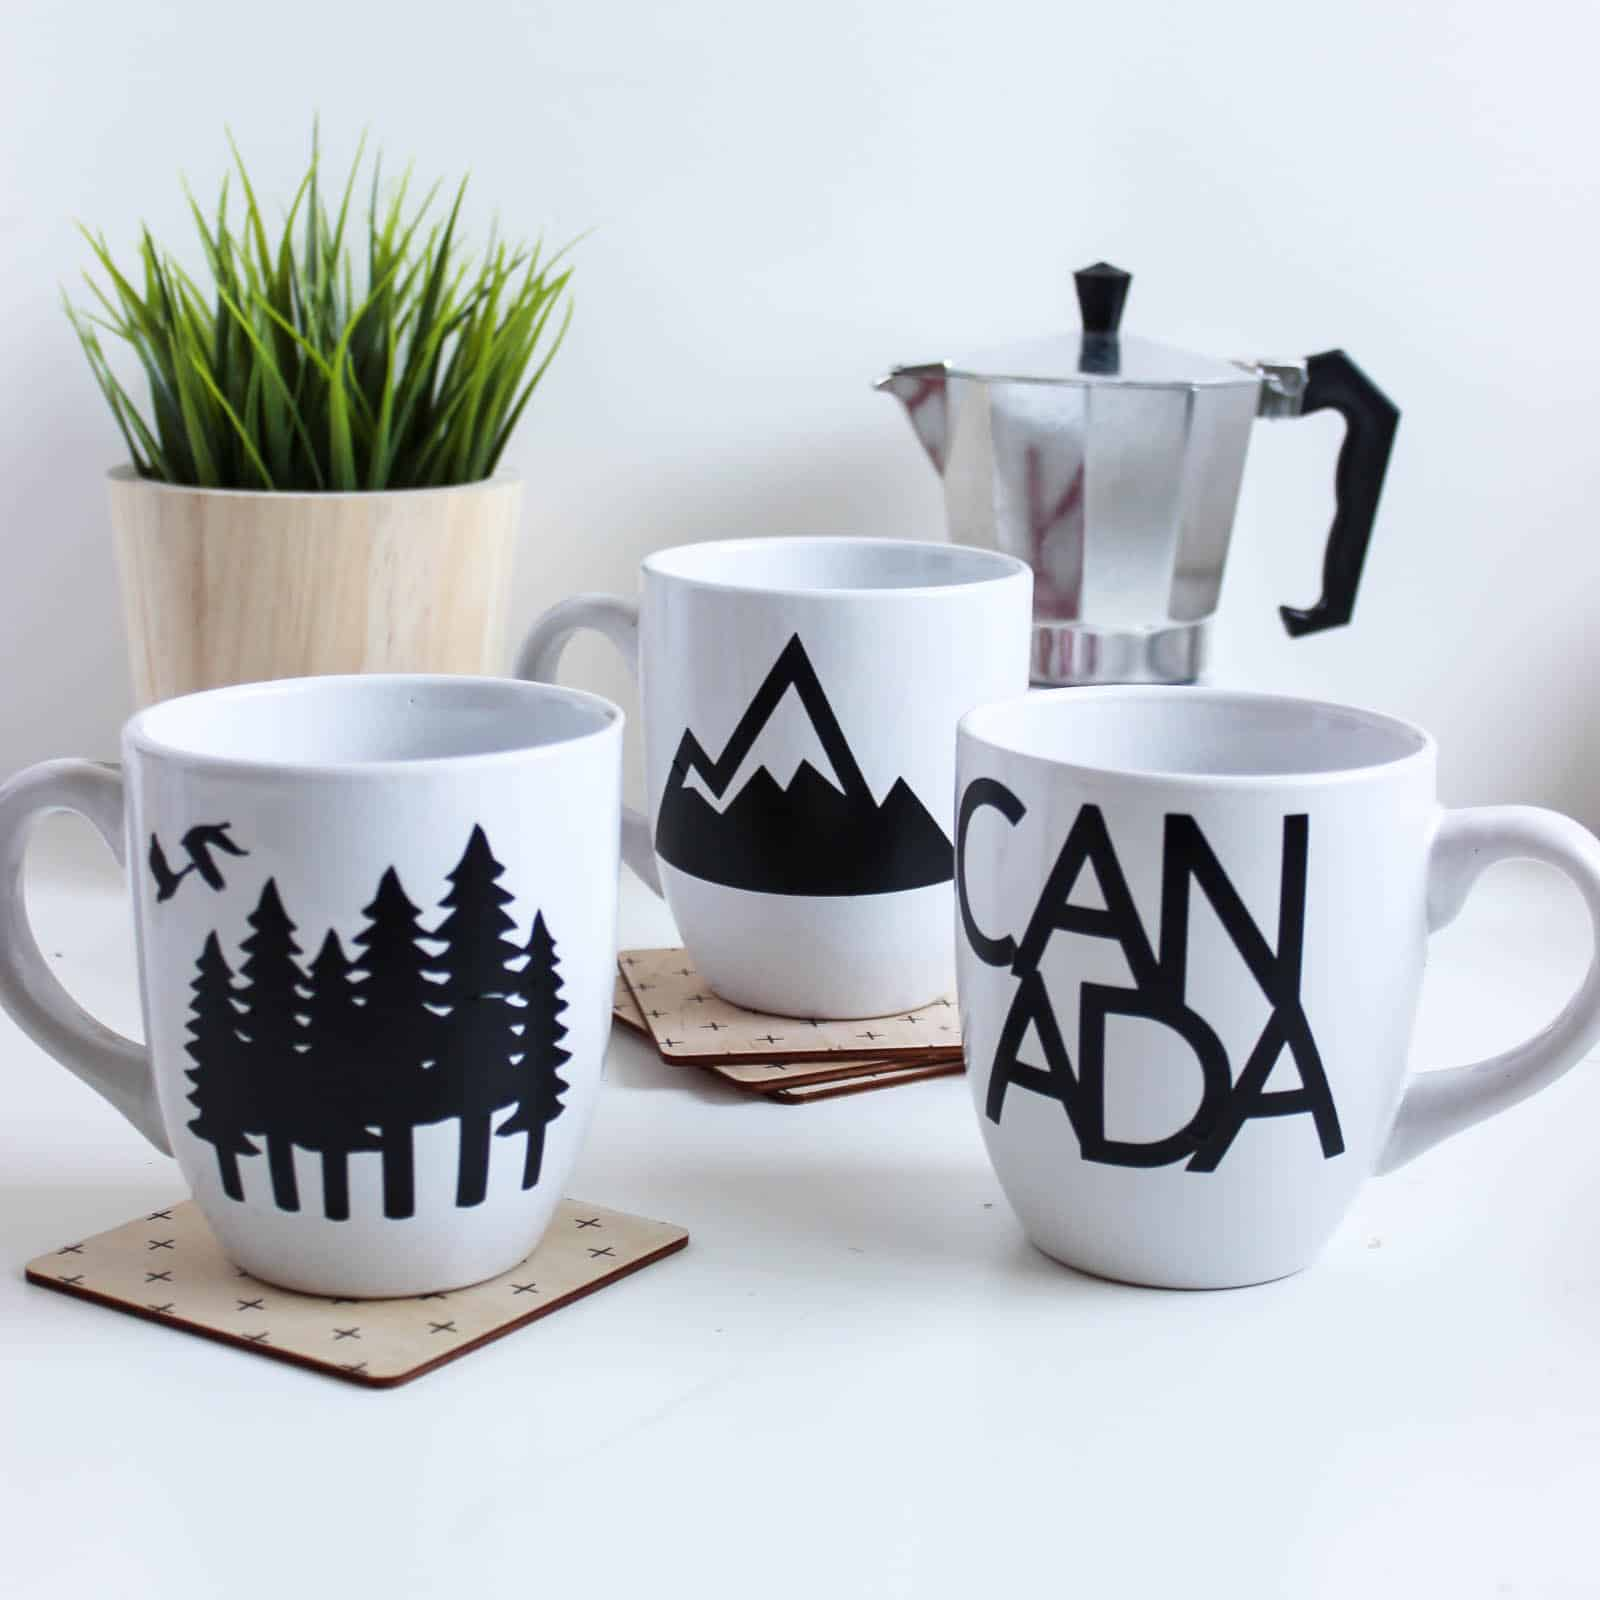 Make Your Own Canadian Mugs with Cricut - Love Create ...